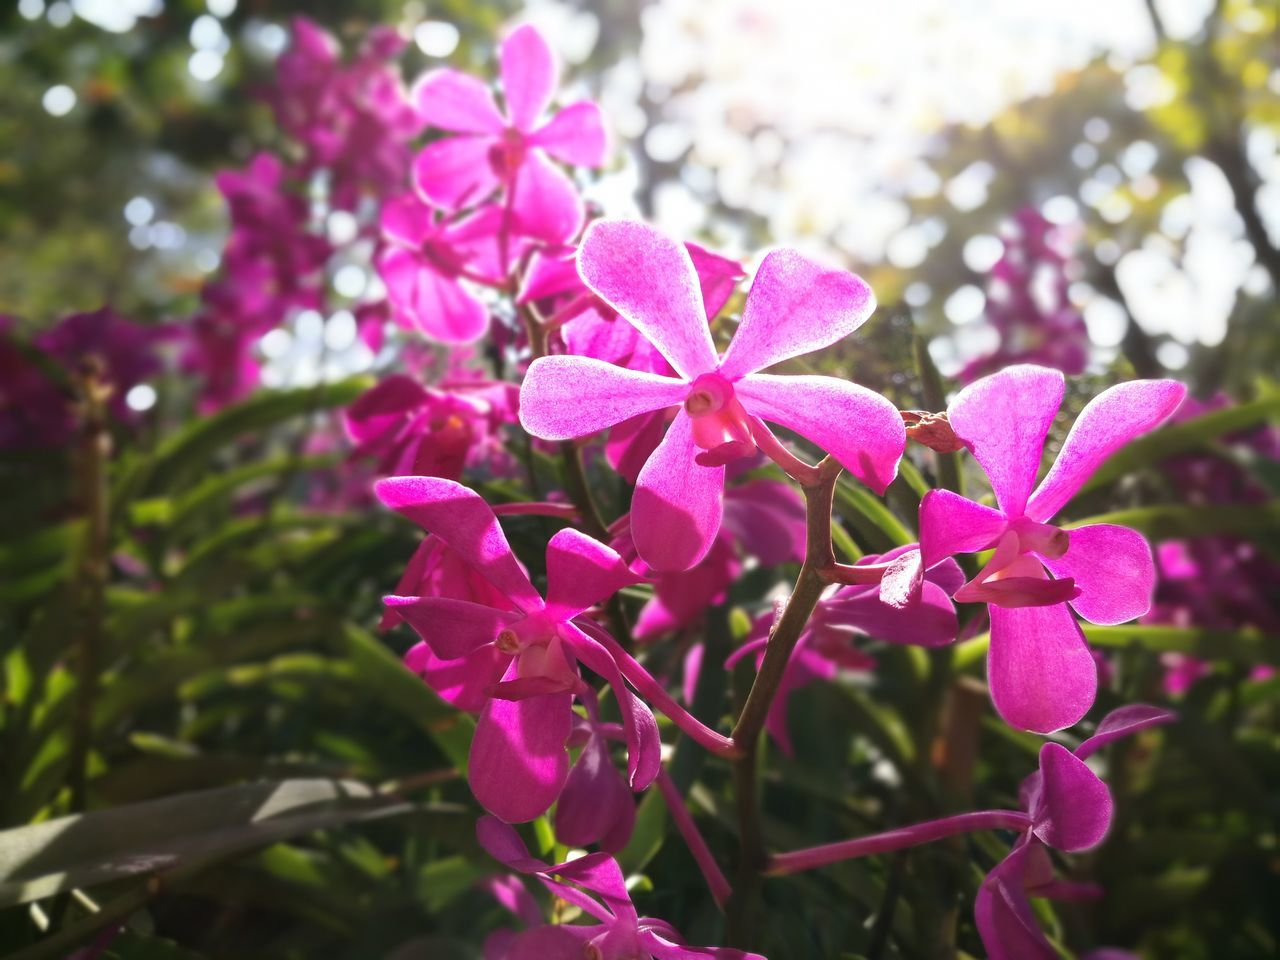 Purple exotic flower Thailand Light Morning Garden Exotic Flowers Exotic Day Outdoors Freshness Petal Plant Purple Pink Color Beauty In Nature Orchid Growth Nature Flower